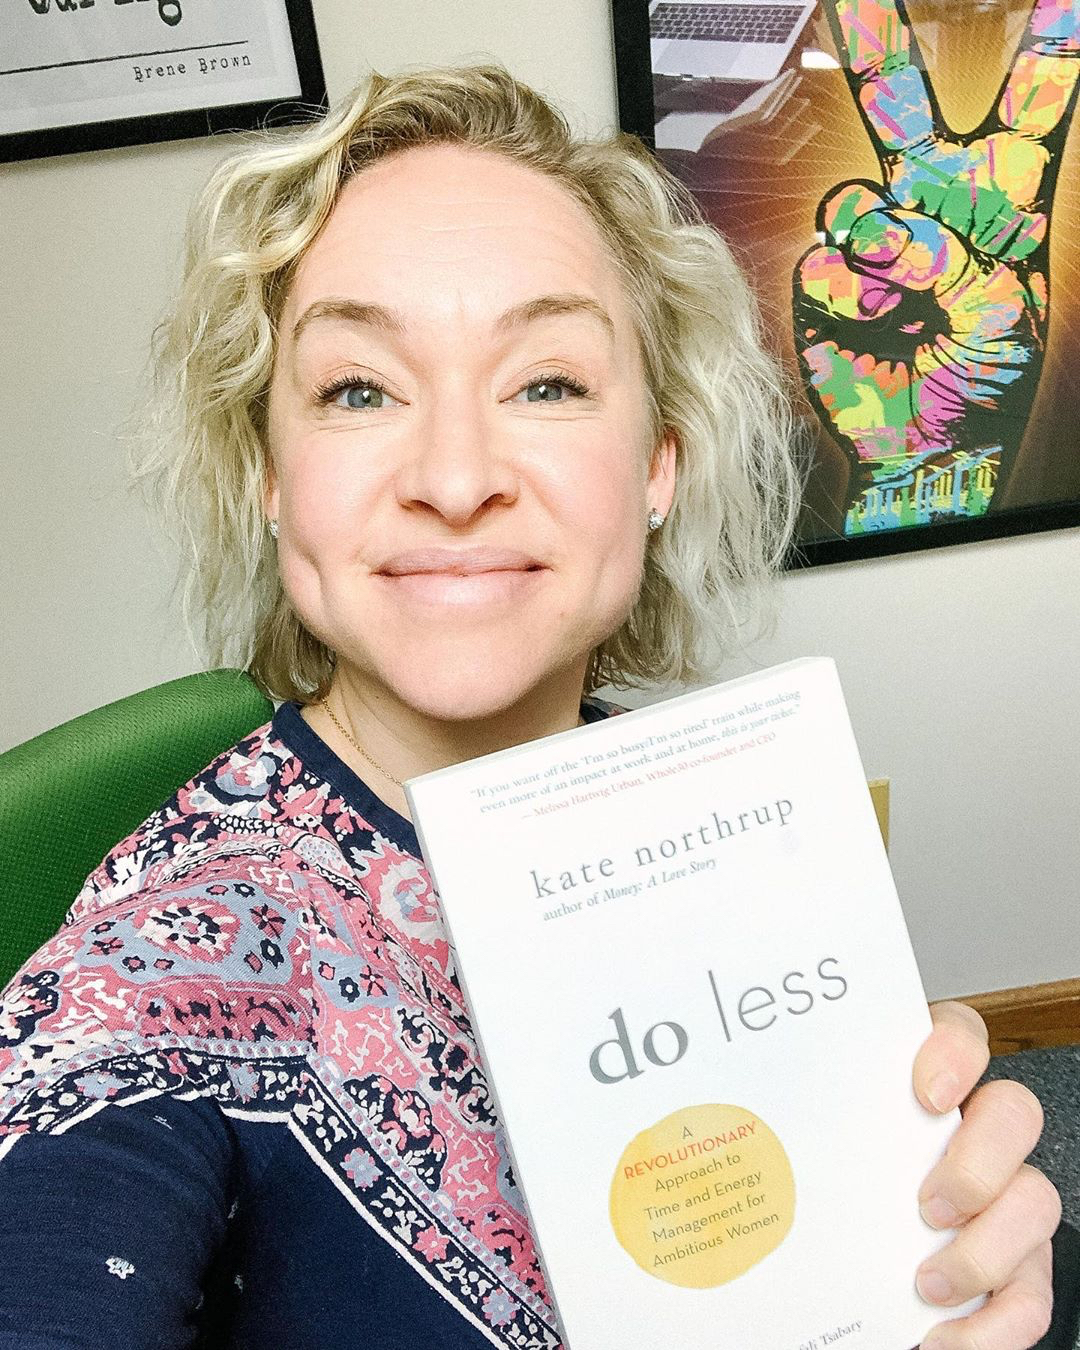 Kate Northrup holding her book Do Less